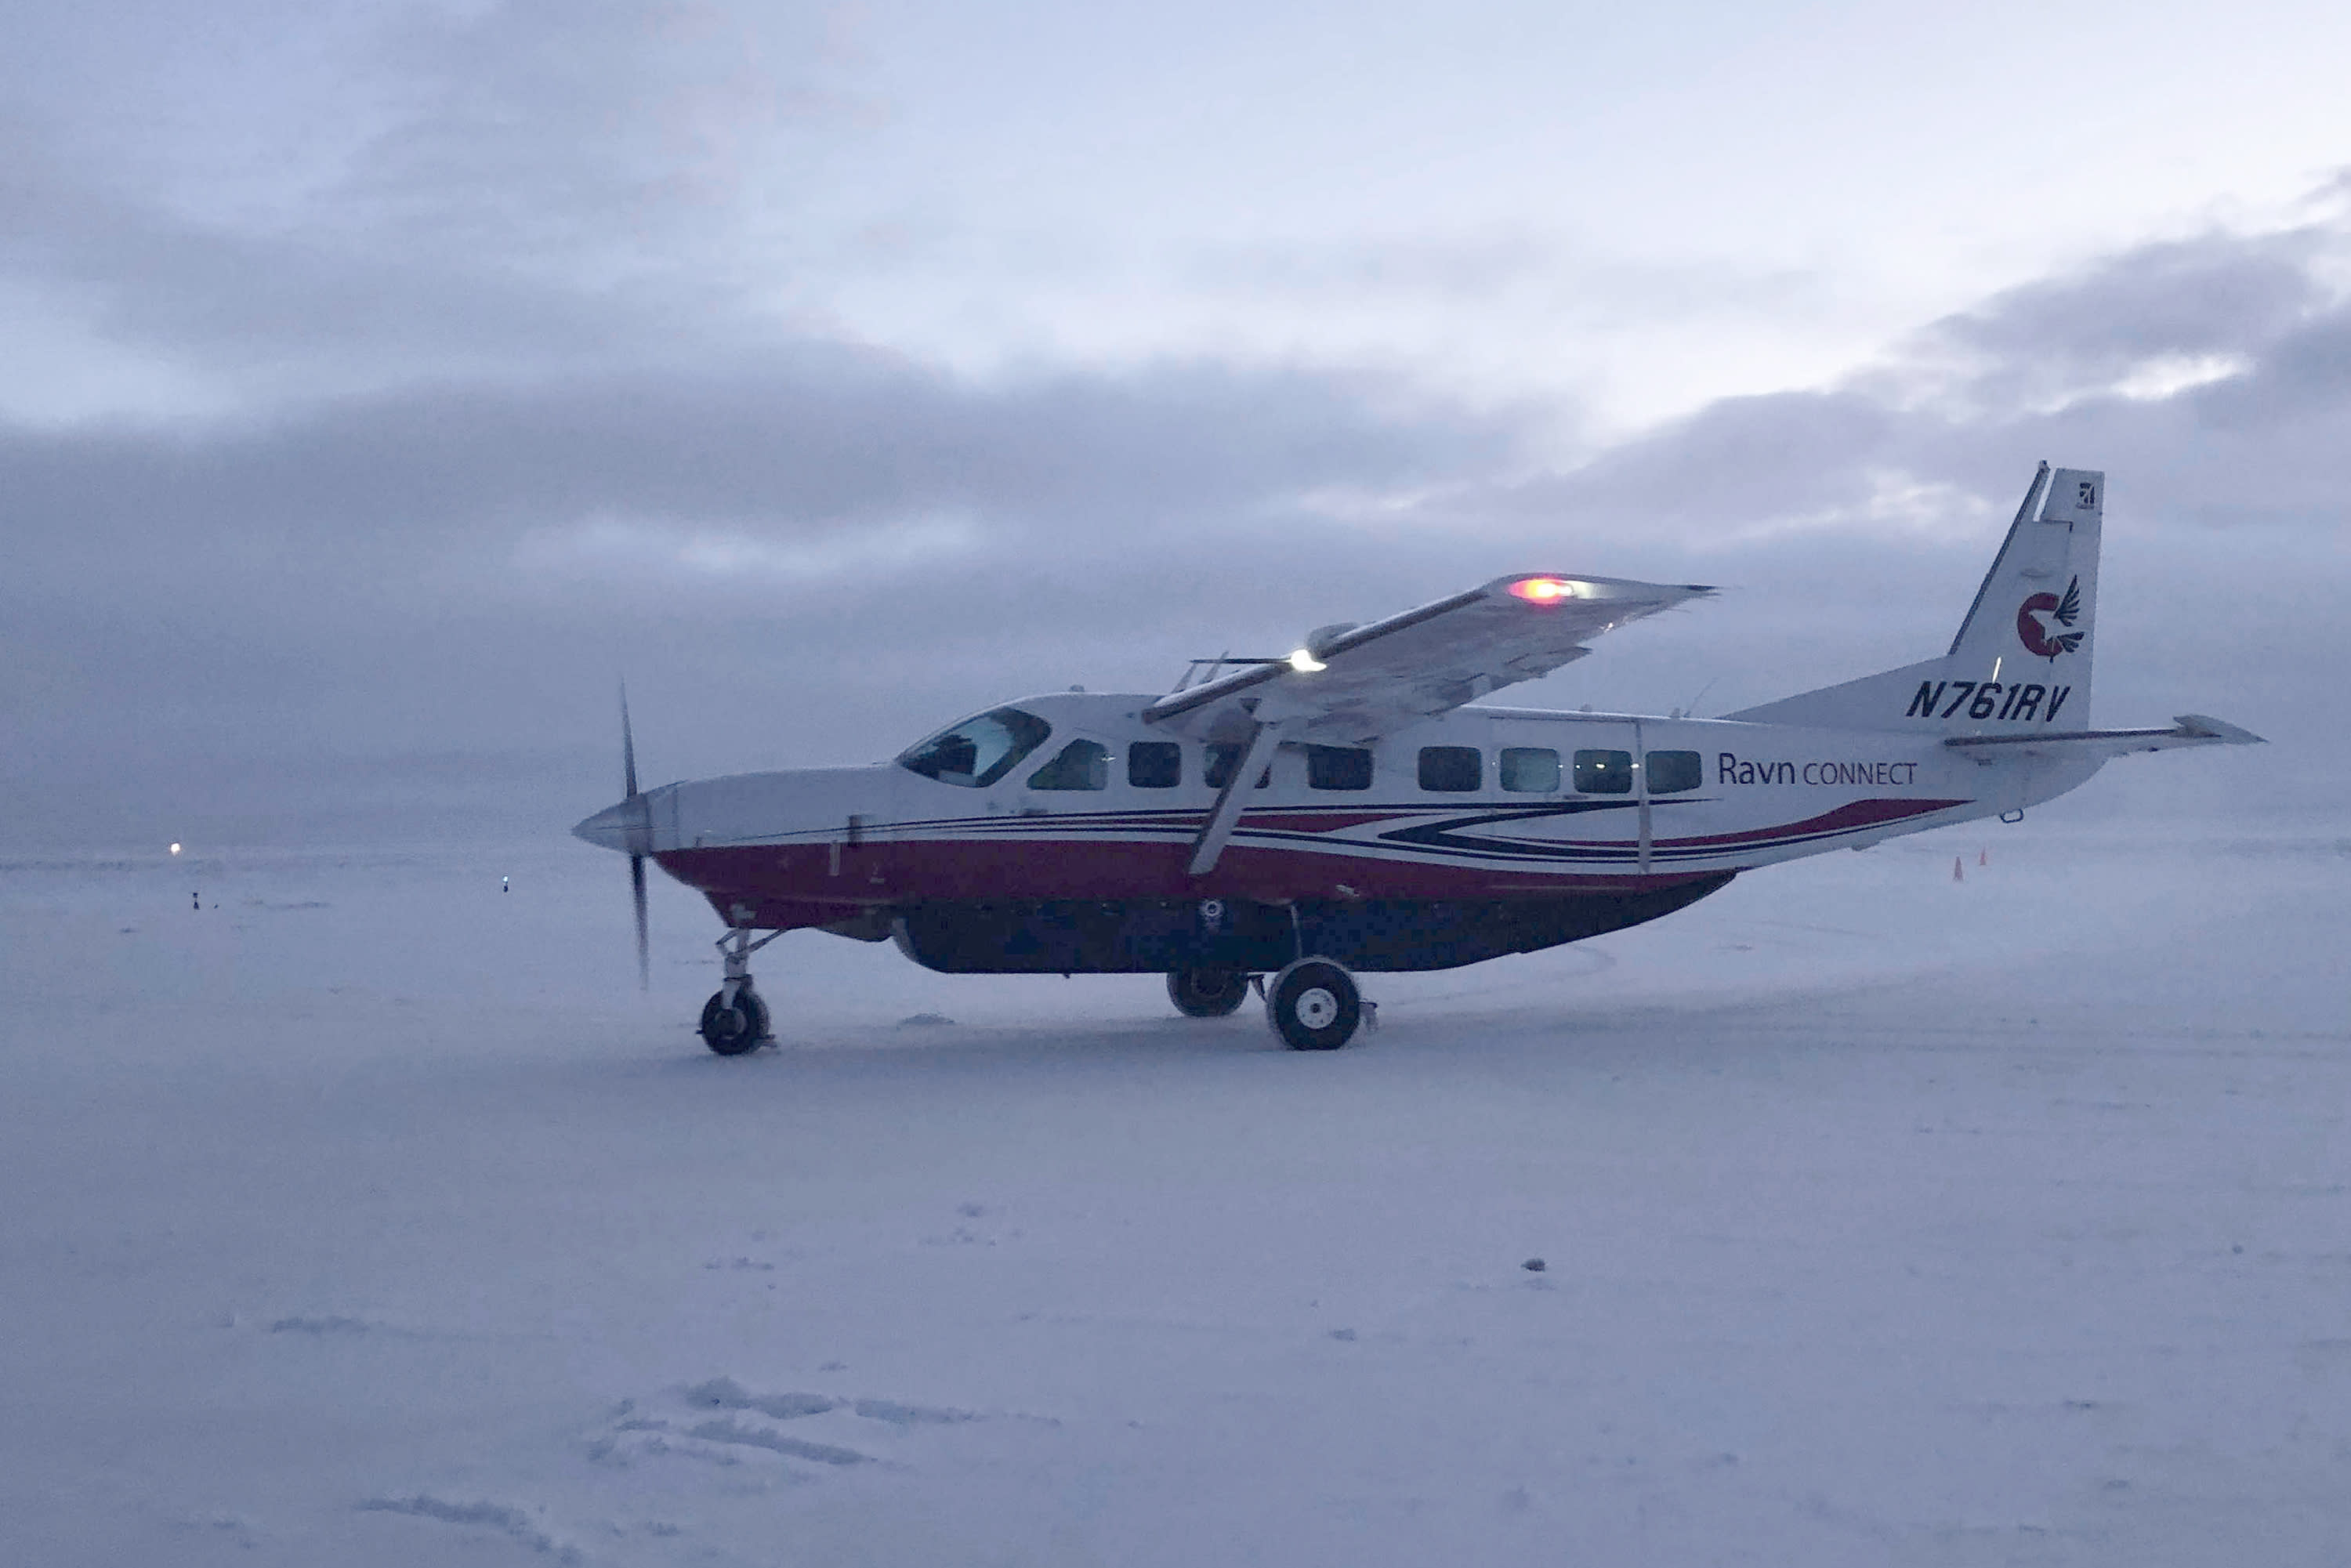 FILE - This Jan 22, 2020, file photo shows a Ravn Connect airplane landing at the airstrip in Toksook Bay, Alaska. The largest rural airline in Alaska has declared bankruptcy and laid off more than a thousand workers but wants $250,000 in bonuses to be awarded to its chief executive and other employees. Alaska Public Radio reported that RavnAir Group filed the request Tuesday, Aug. 11, 2020 in Delaware bankruptcy court. (AP Photo/Mark Thiessen, File)